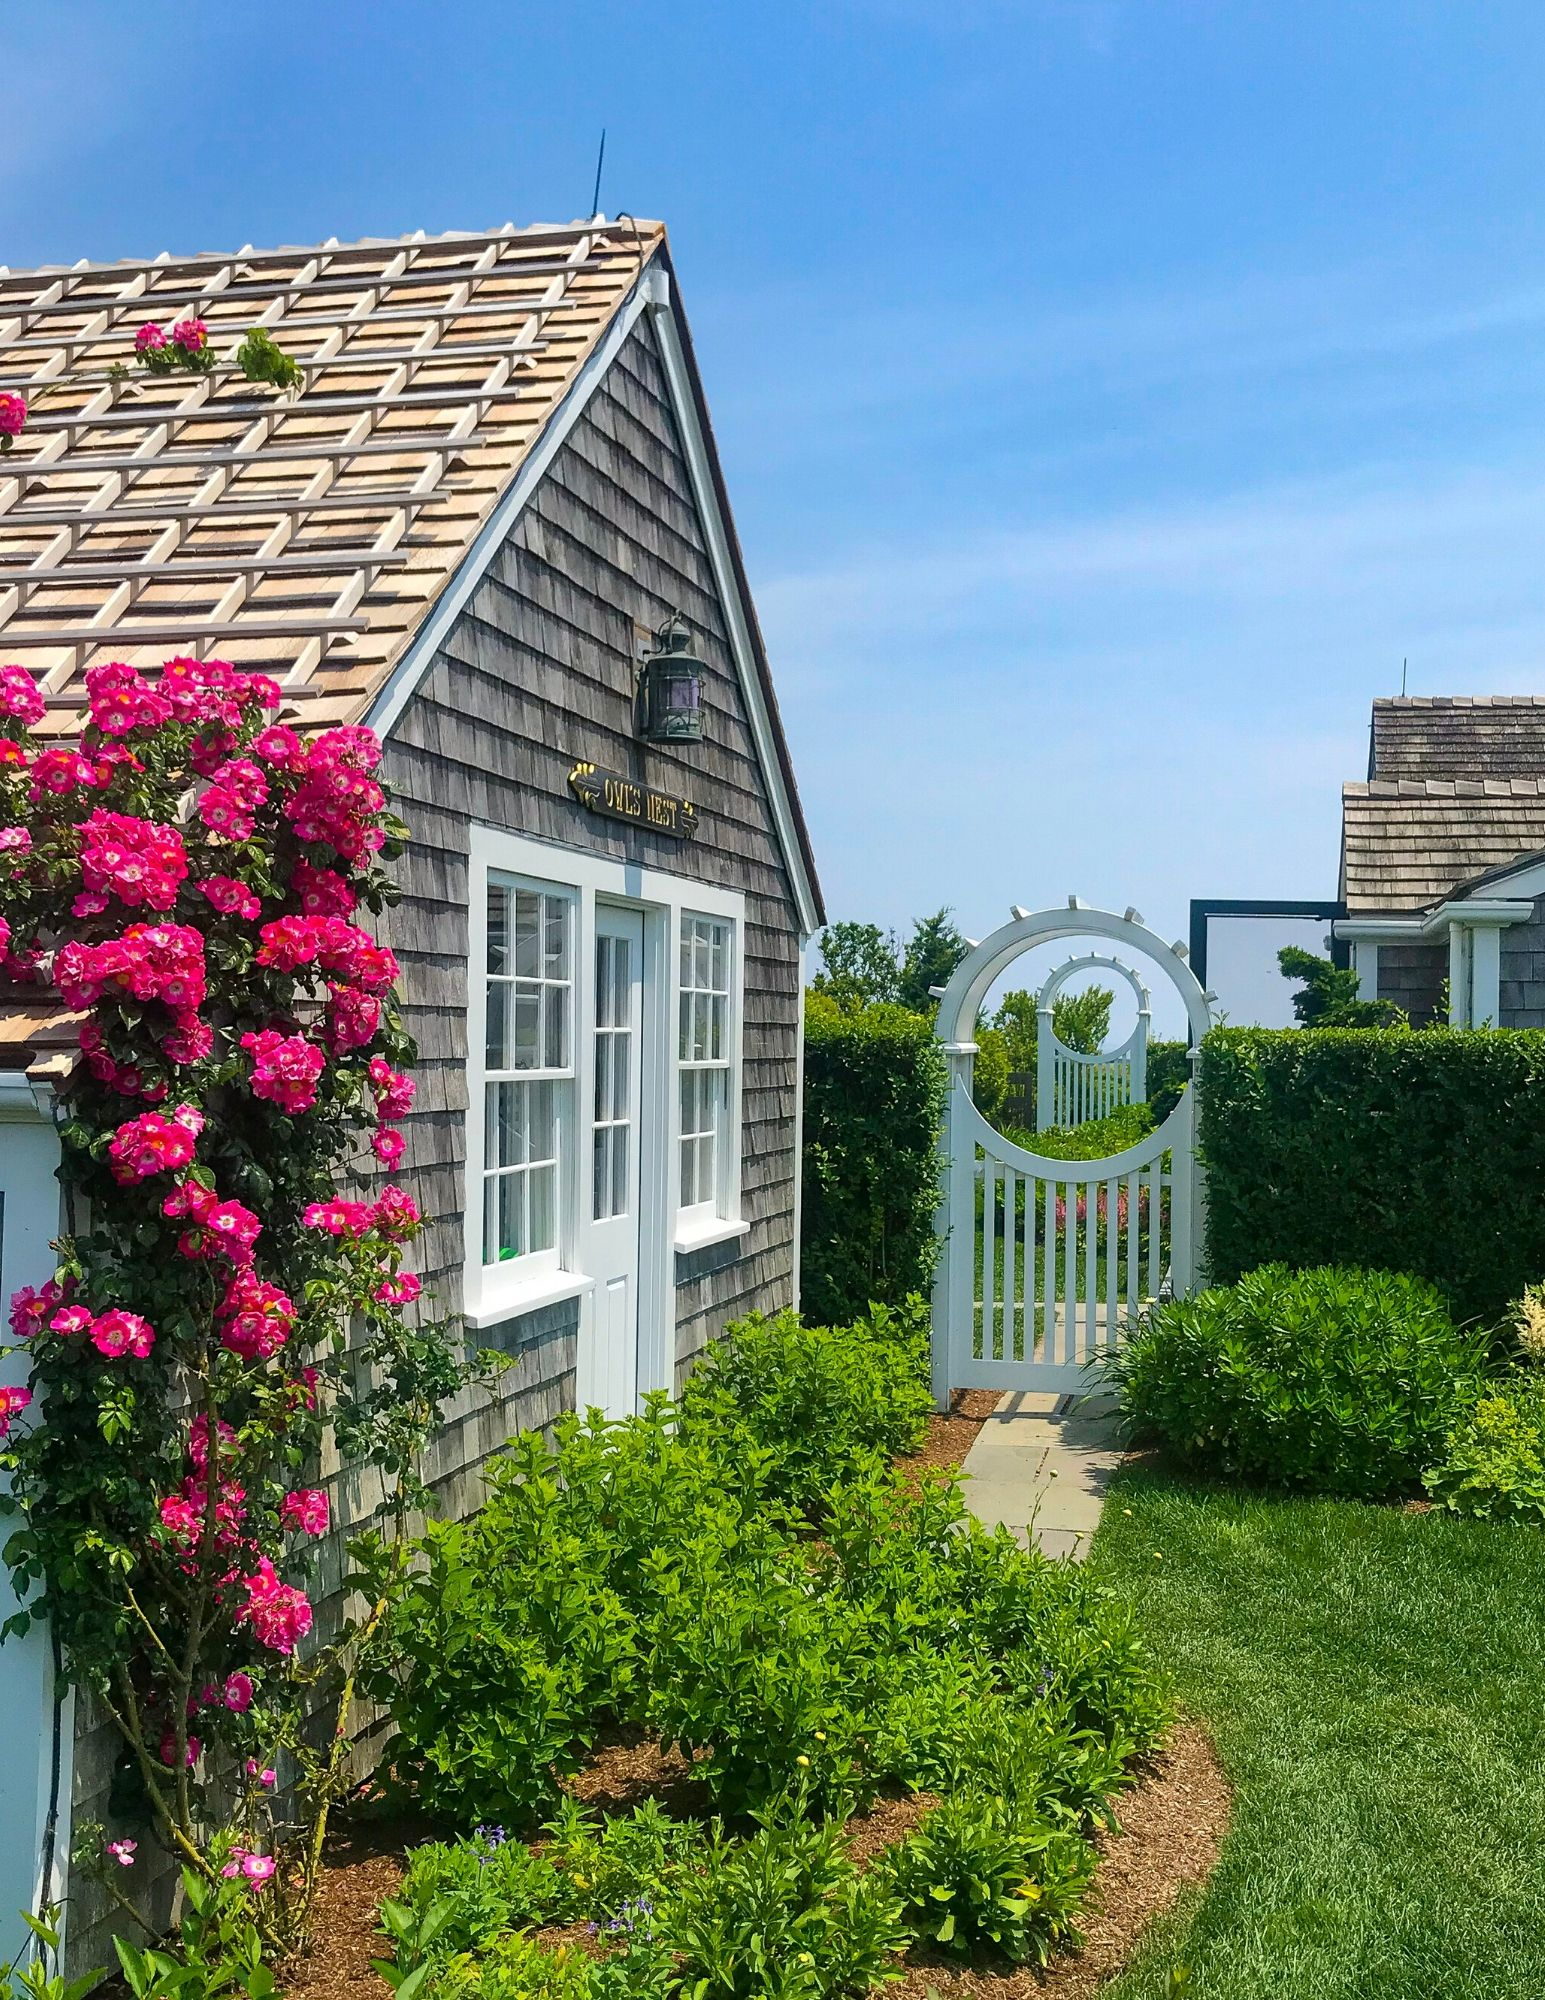 Nantucket Rose Covered Cottages in Sconset-7